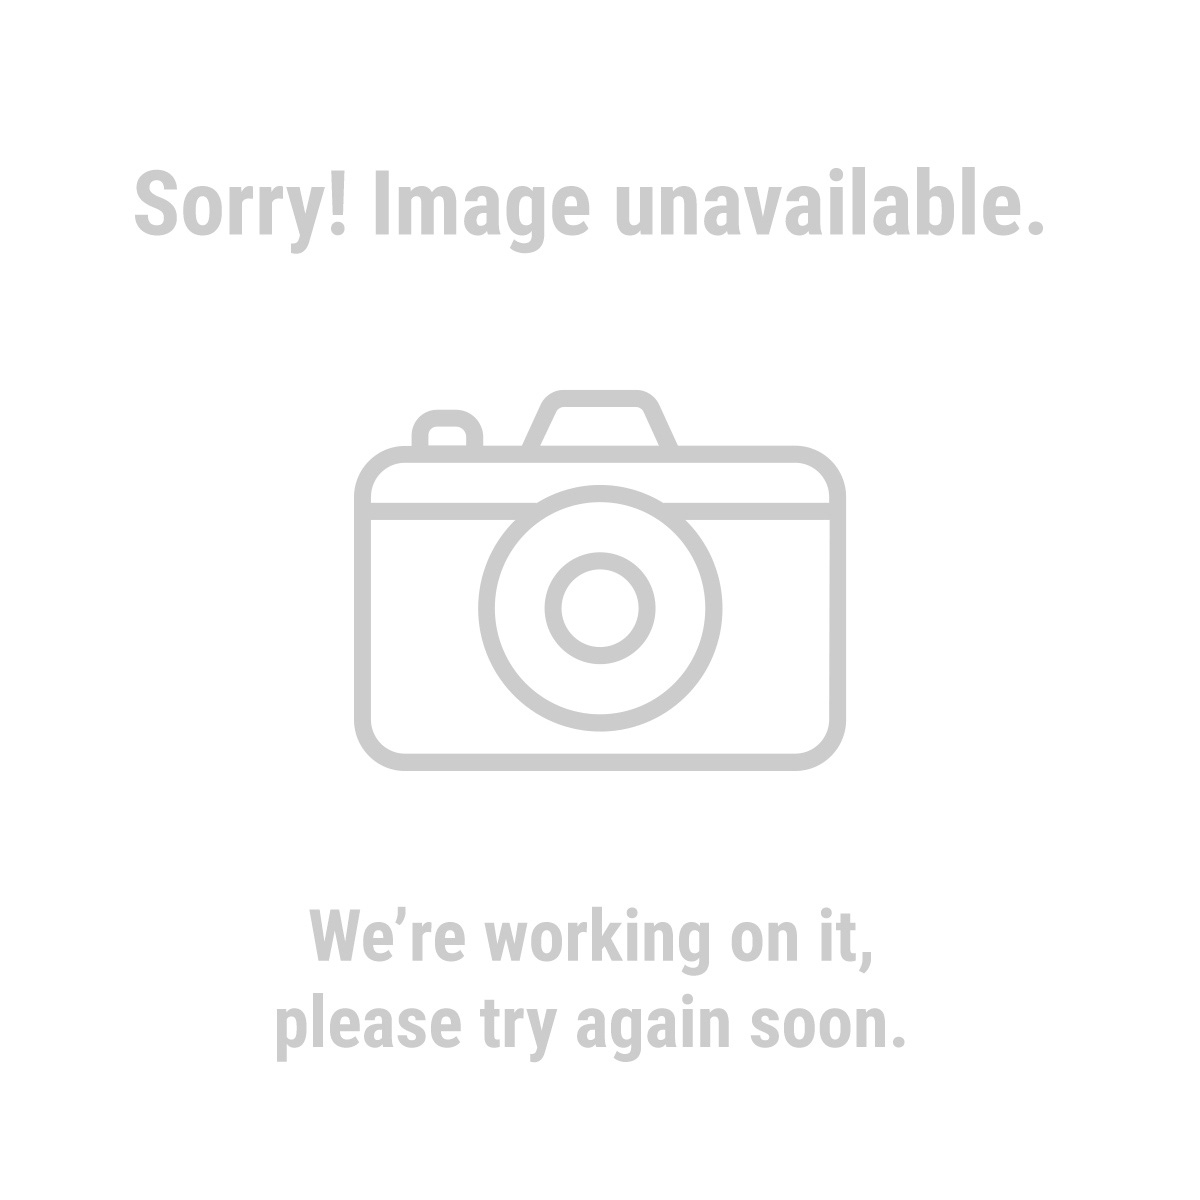 Heavy duty self adjusting wire stripper wire and cable stripper greentooth Images